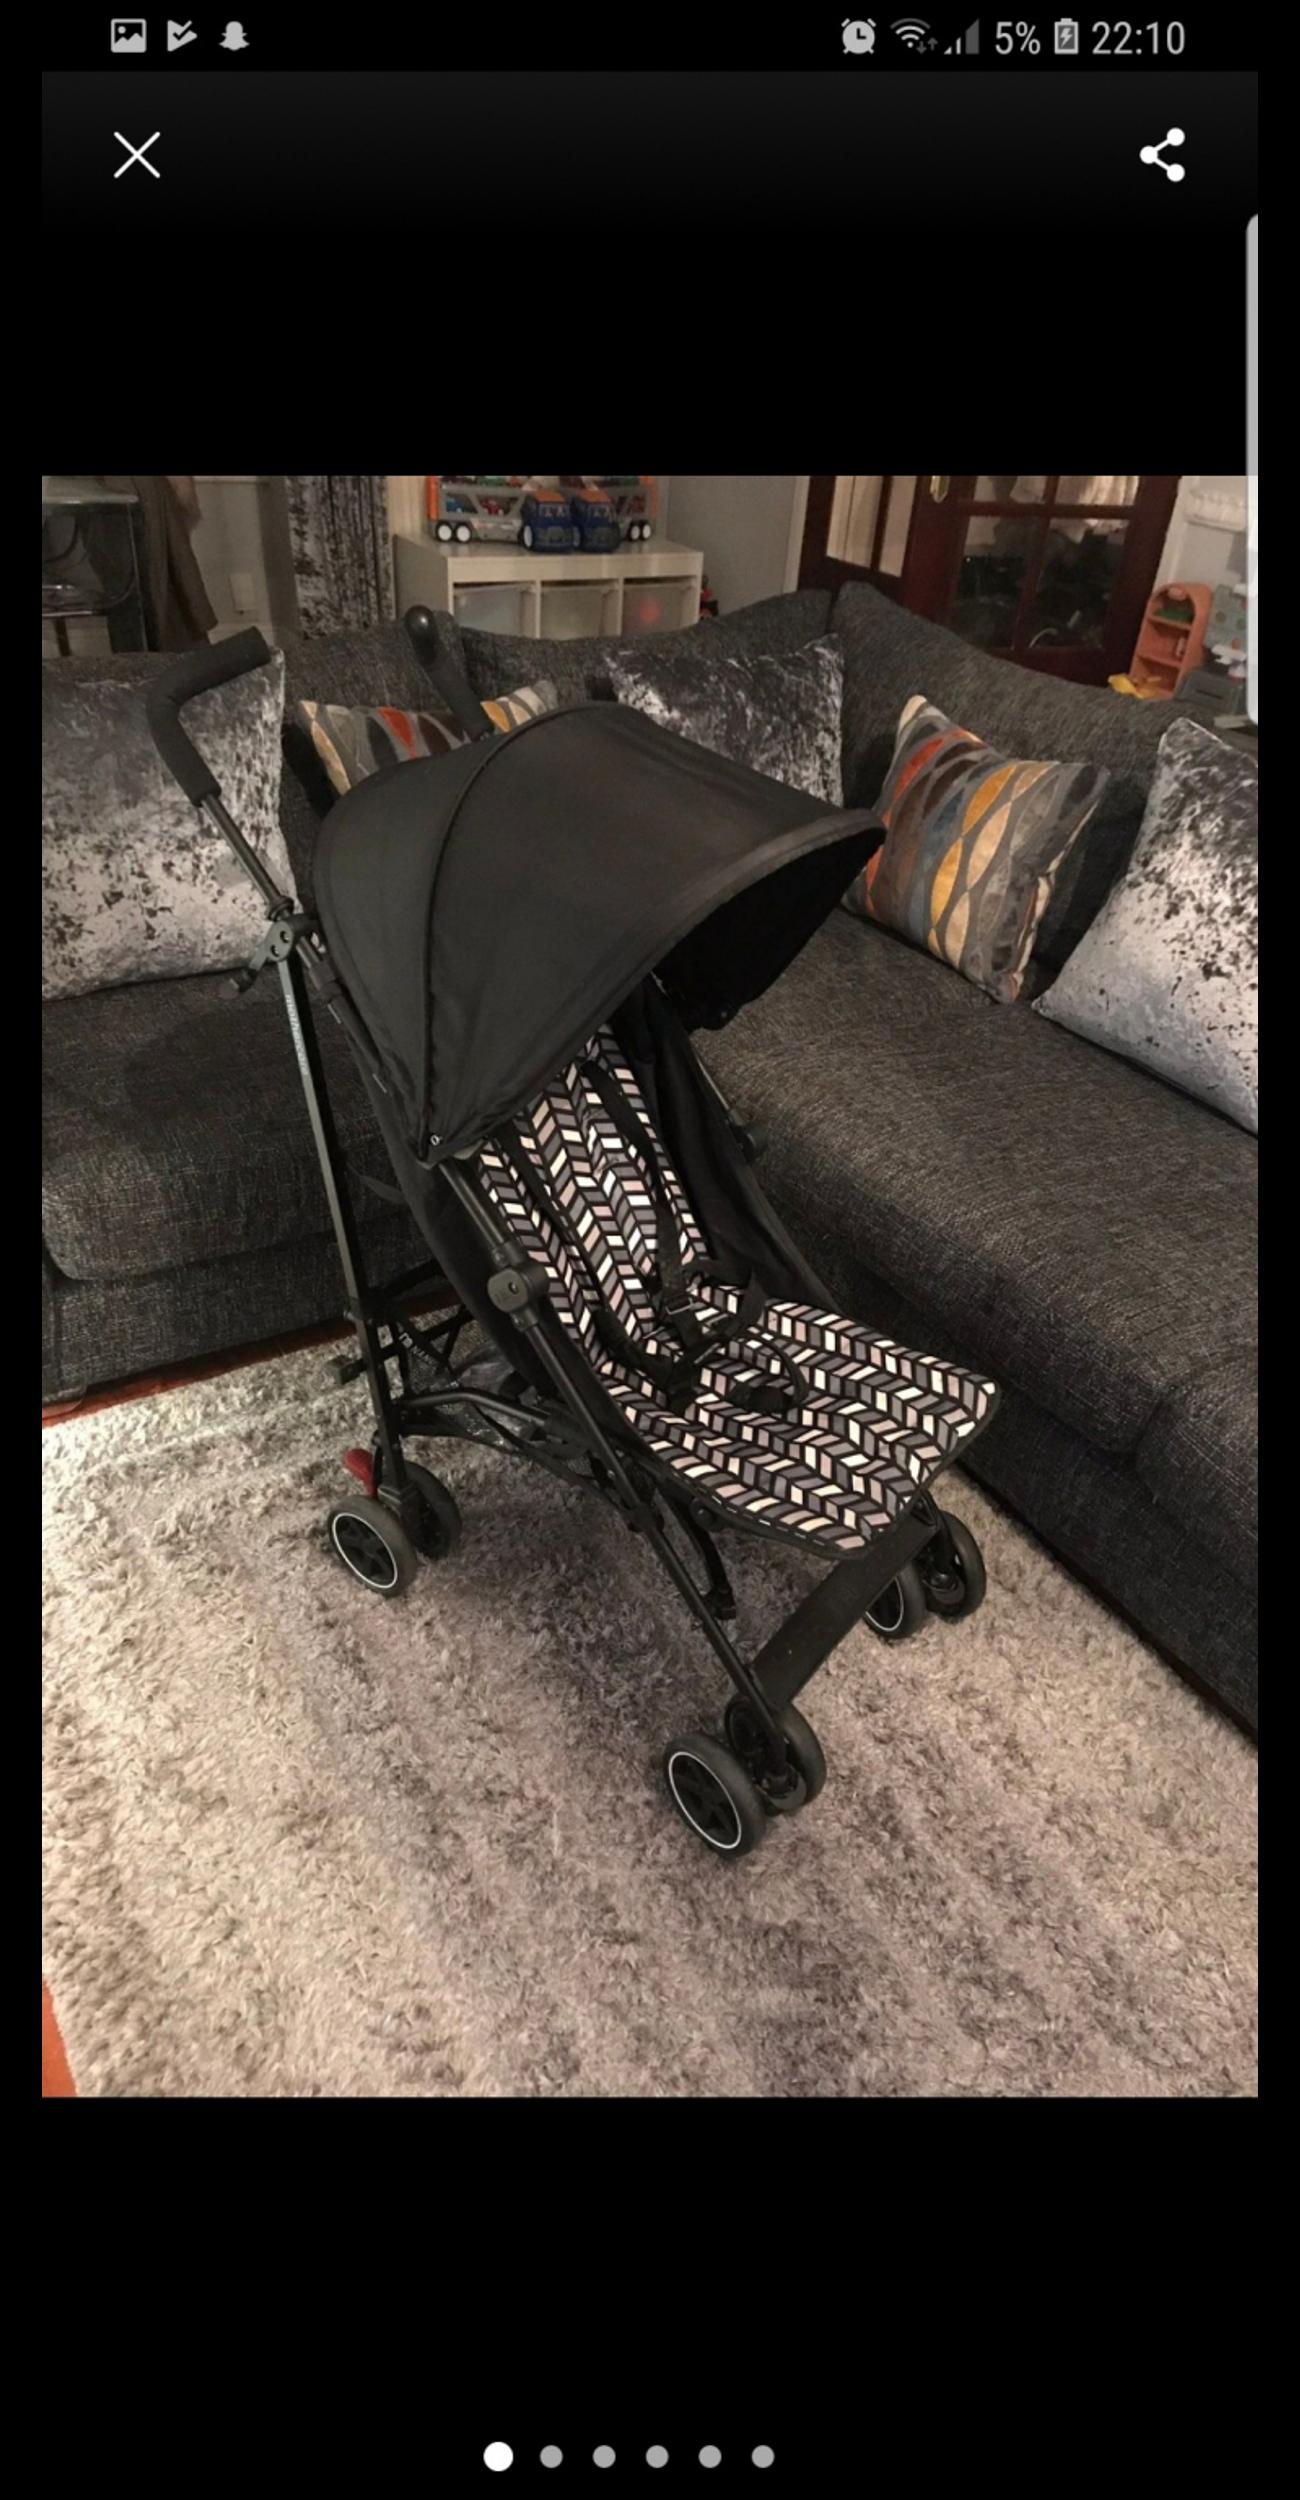 1 of 2 I am selling as I have twins  Bought originally in September to take on holiday instead of double pram. Used a few times since for family days out etc.  Great condition. Comes from smoke/pet free home.  Selling to make room for double buggy instead.  Includes rain cover however it is not the best quality. Due to boys kicking it has tore at the side (see pics), but it does the job.